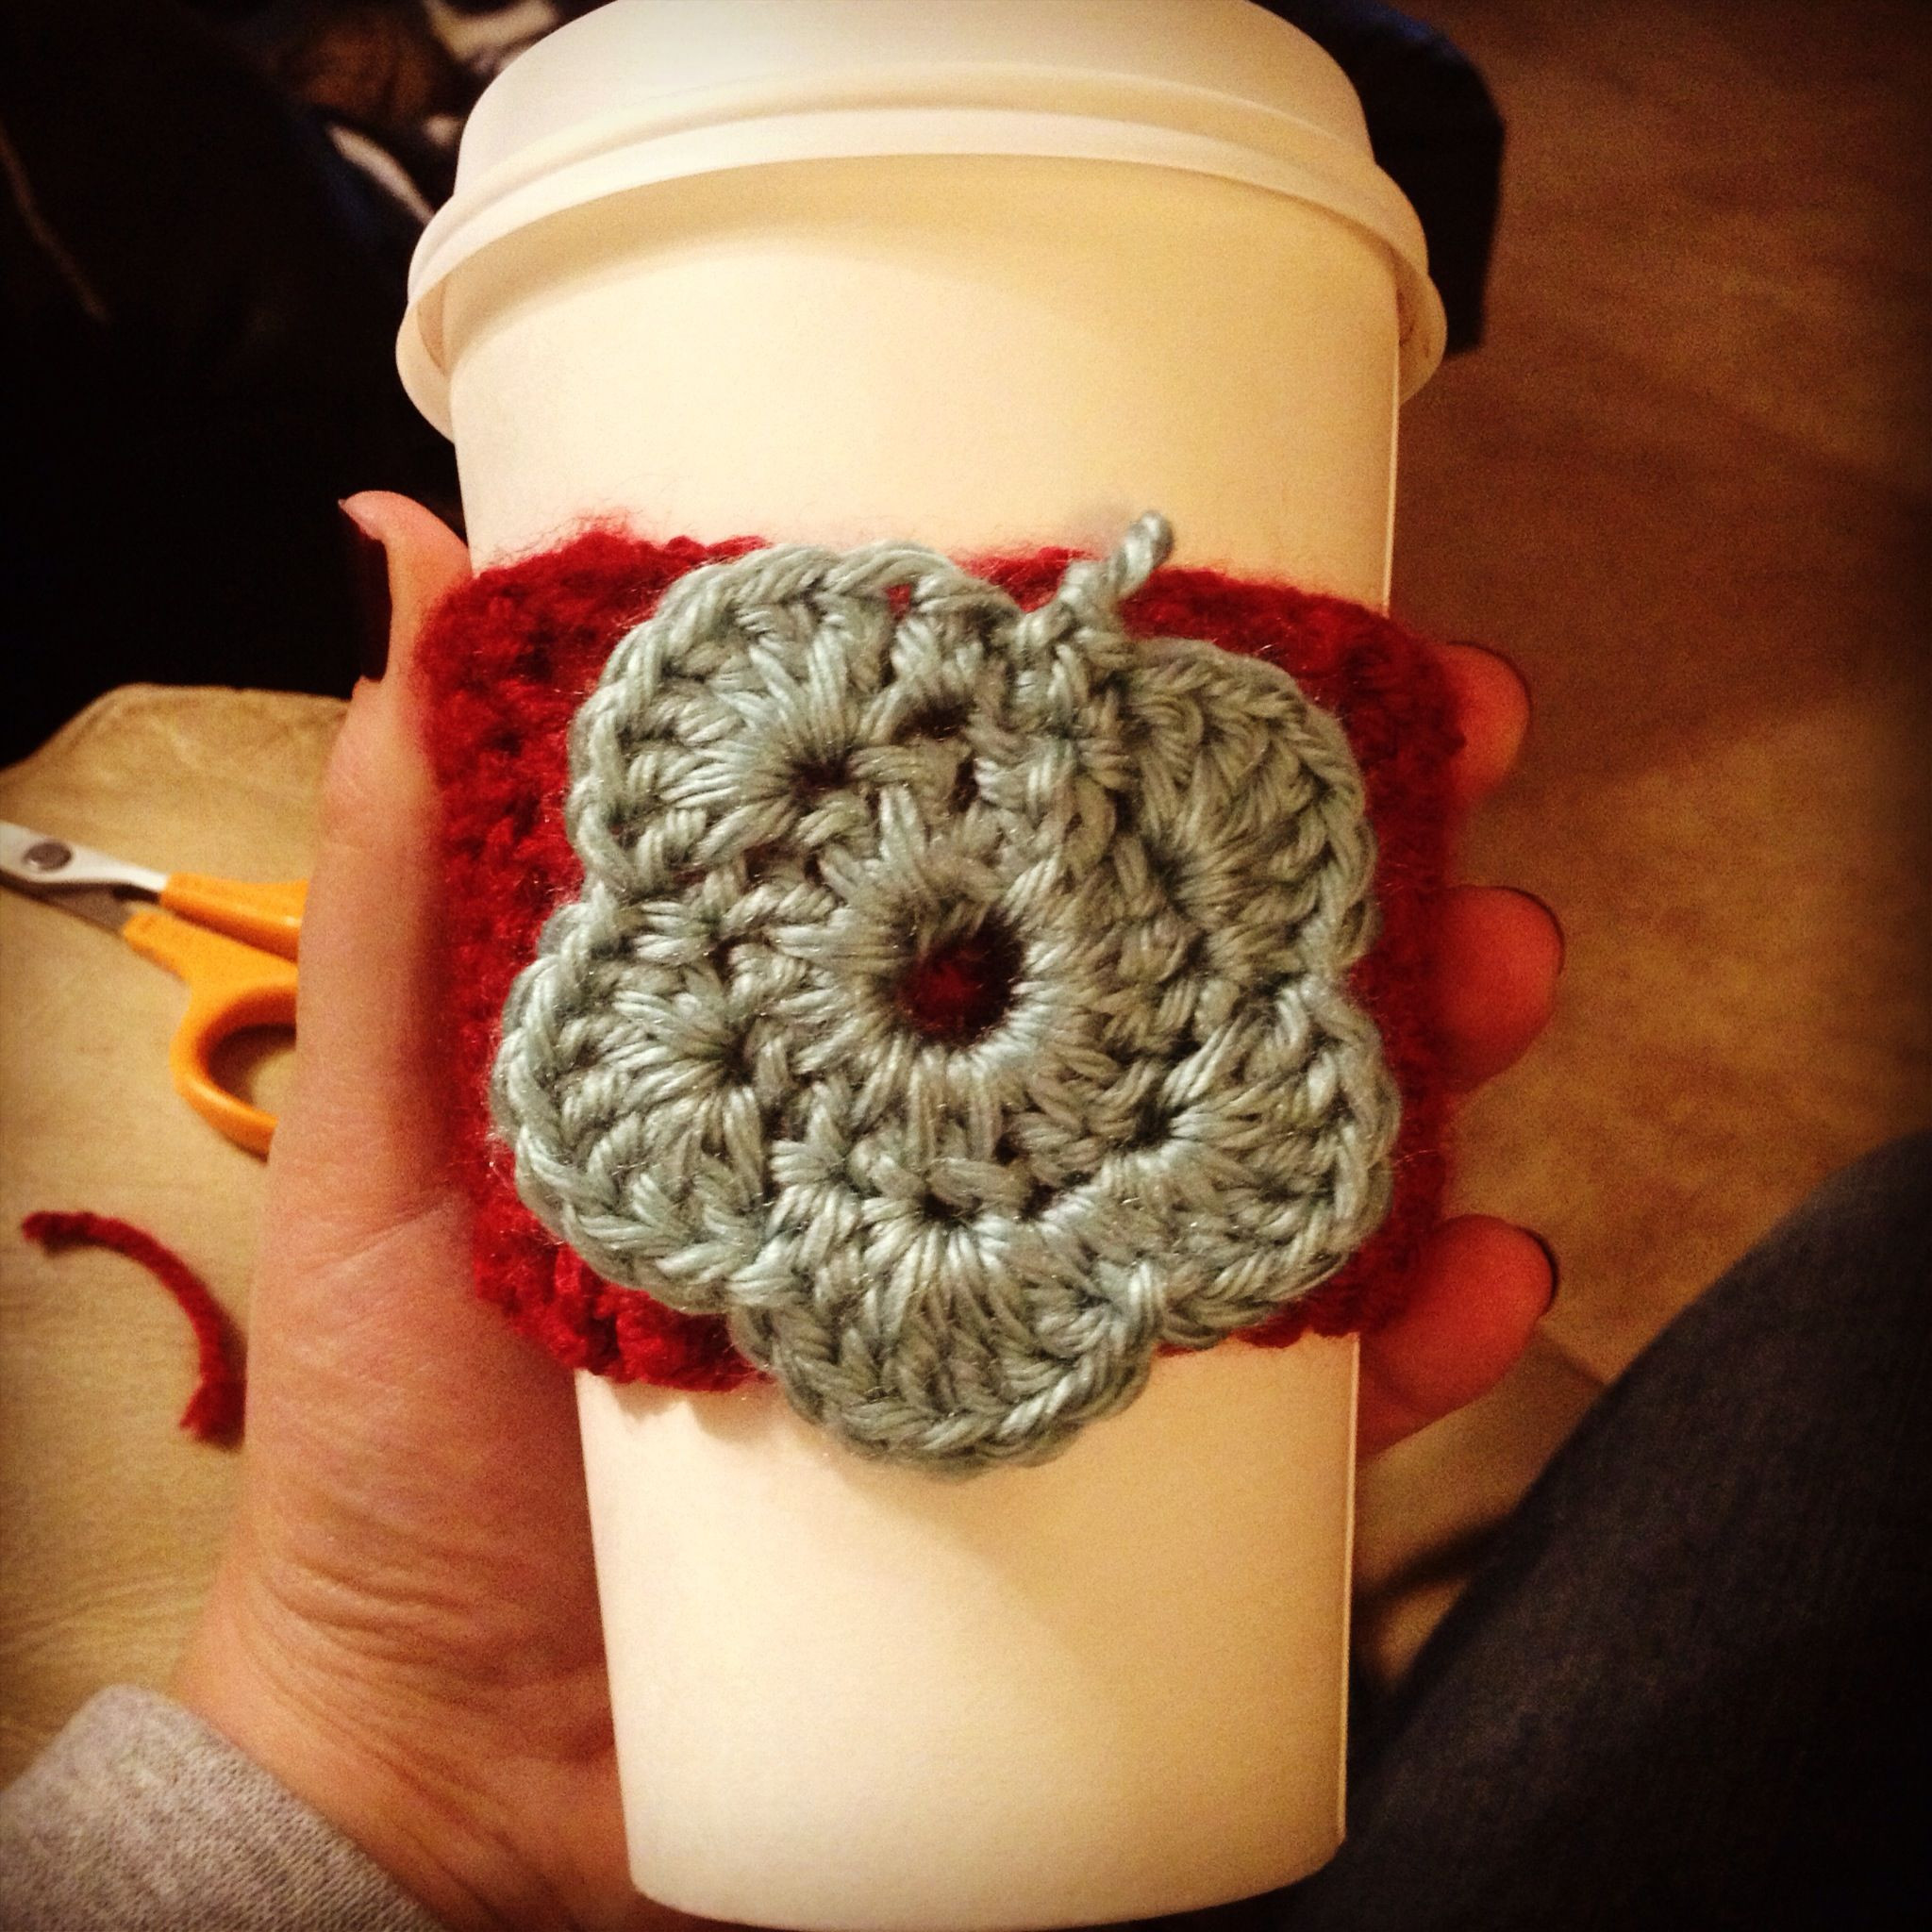 Best ideas about Crochet Gift Ideas . Save or Pin Crochet cozies Christmas Gift Ideas Now.